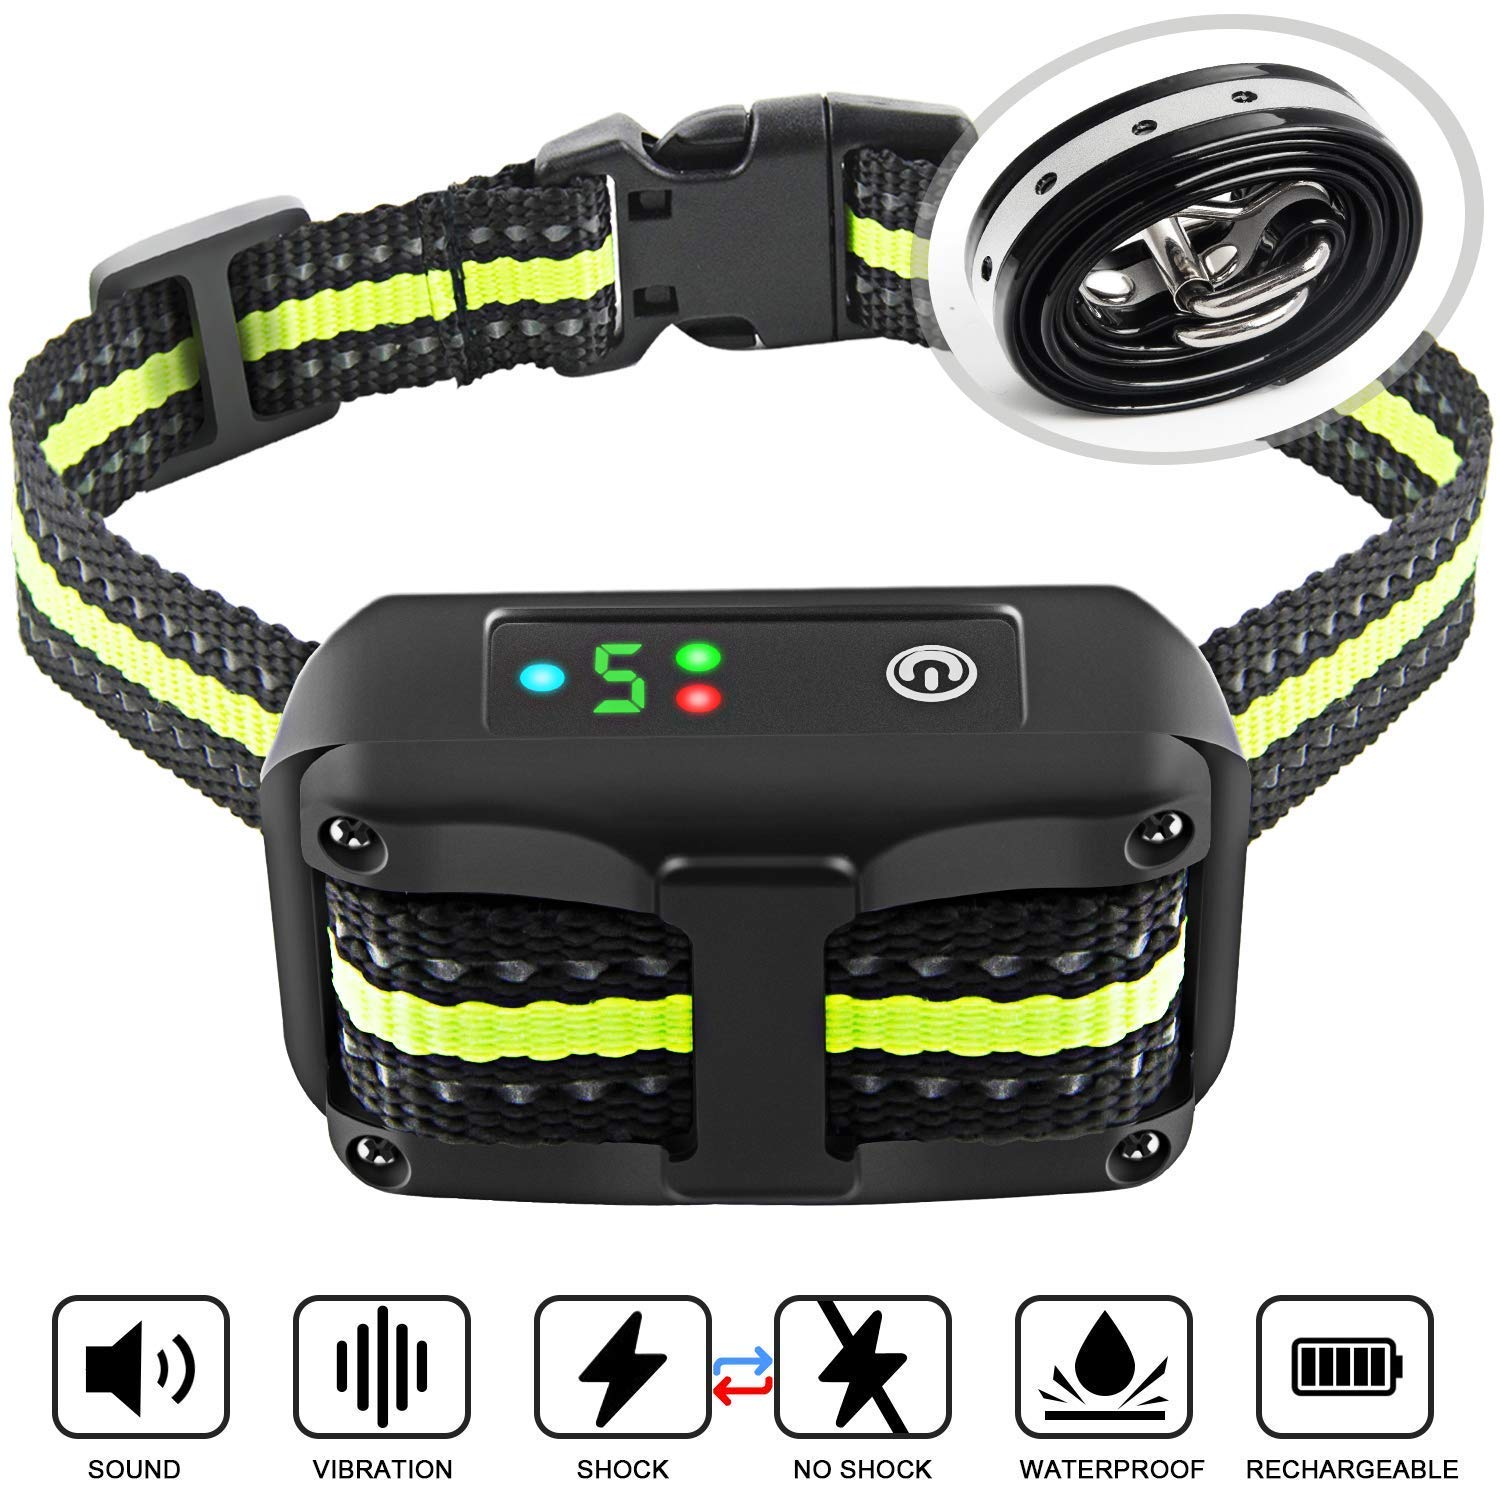 Bark Collar 2019 Upgrade Version No Bark Collar Rechargeable Anti bark Collar with Beep Vibration and No Harm Shock Smart Detection Module Bark collar for Small Medium Large Dog by Authen (Image #1)